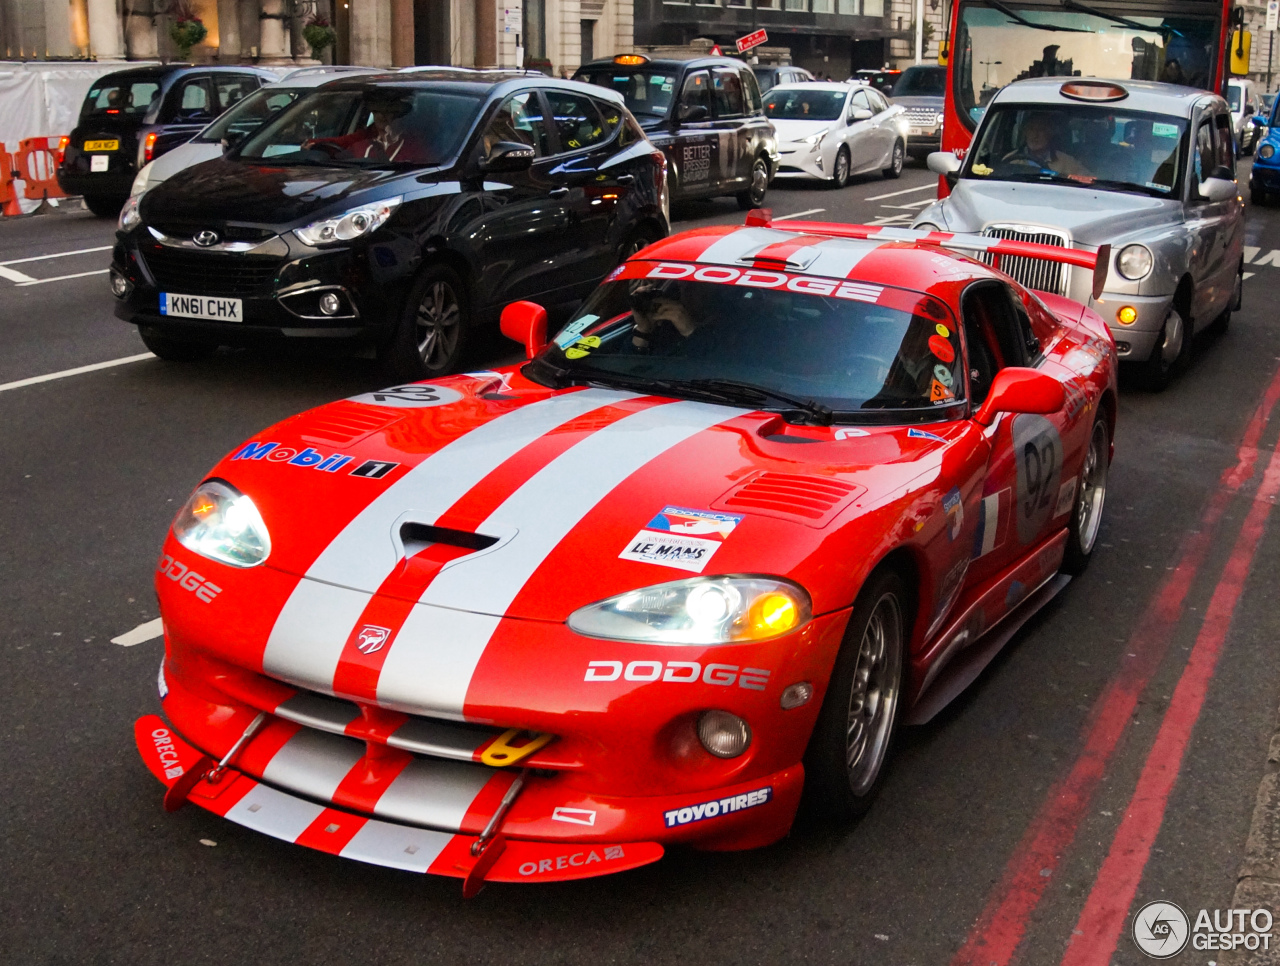 Marks 20and 20Logos 74725514 furthermore SRT Viper GTS R 34751 additionally Dodge Viper GTS R 66385 likewise 1998 Dodge Viper Gts R as well Dodge Challenger Srt 8. on viper gtsr